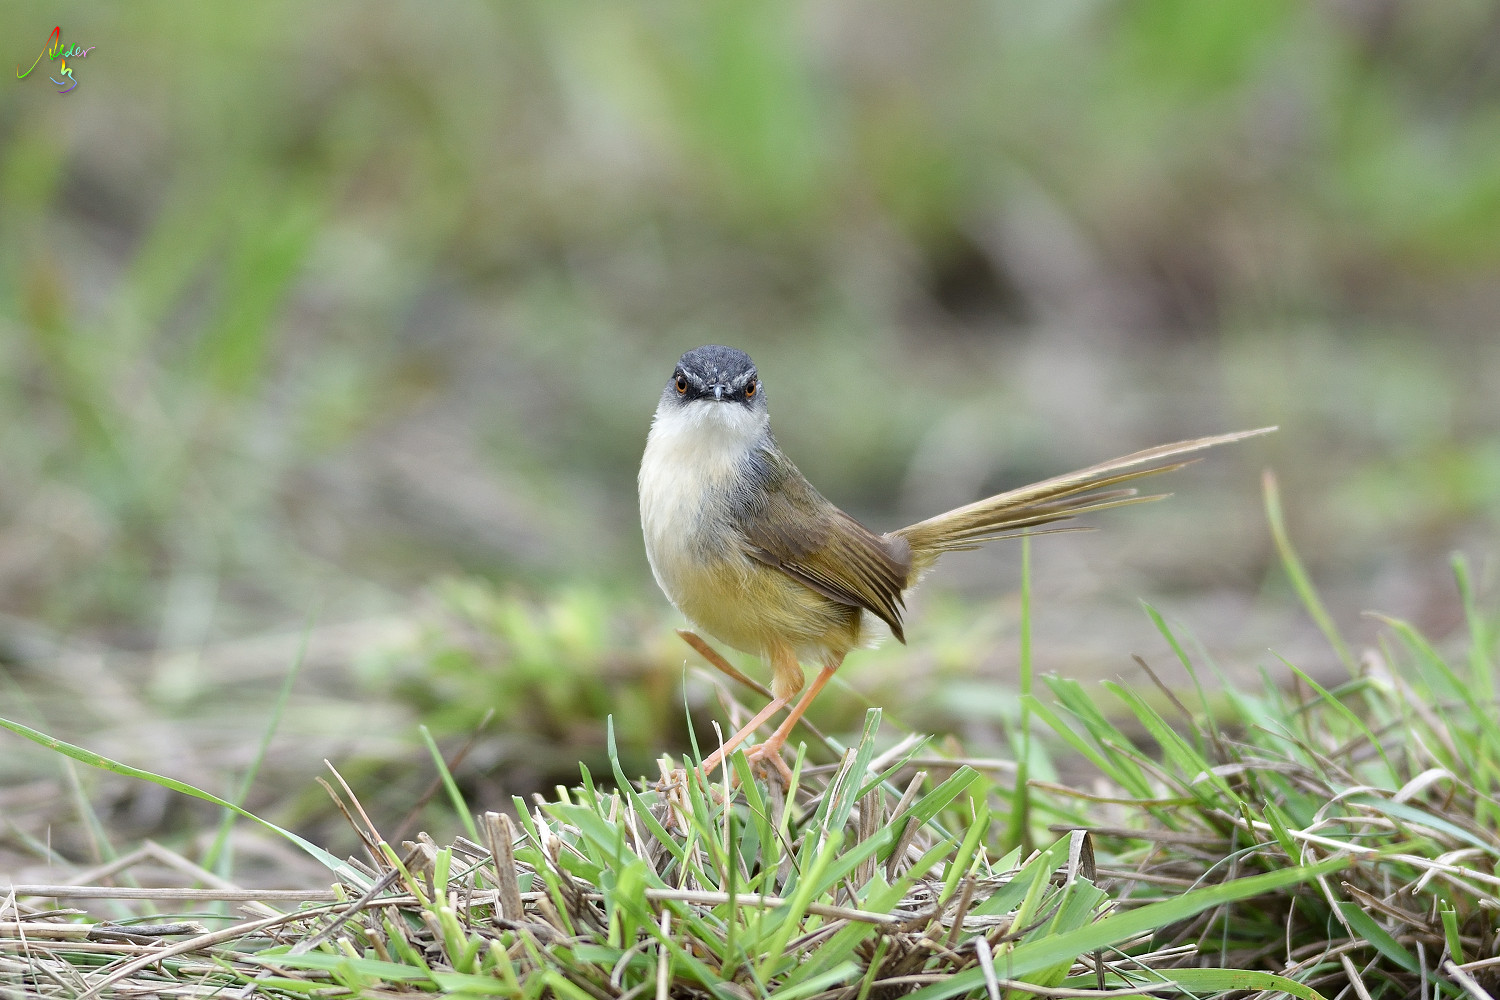 Yellow-bellied_Prinia_3494